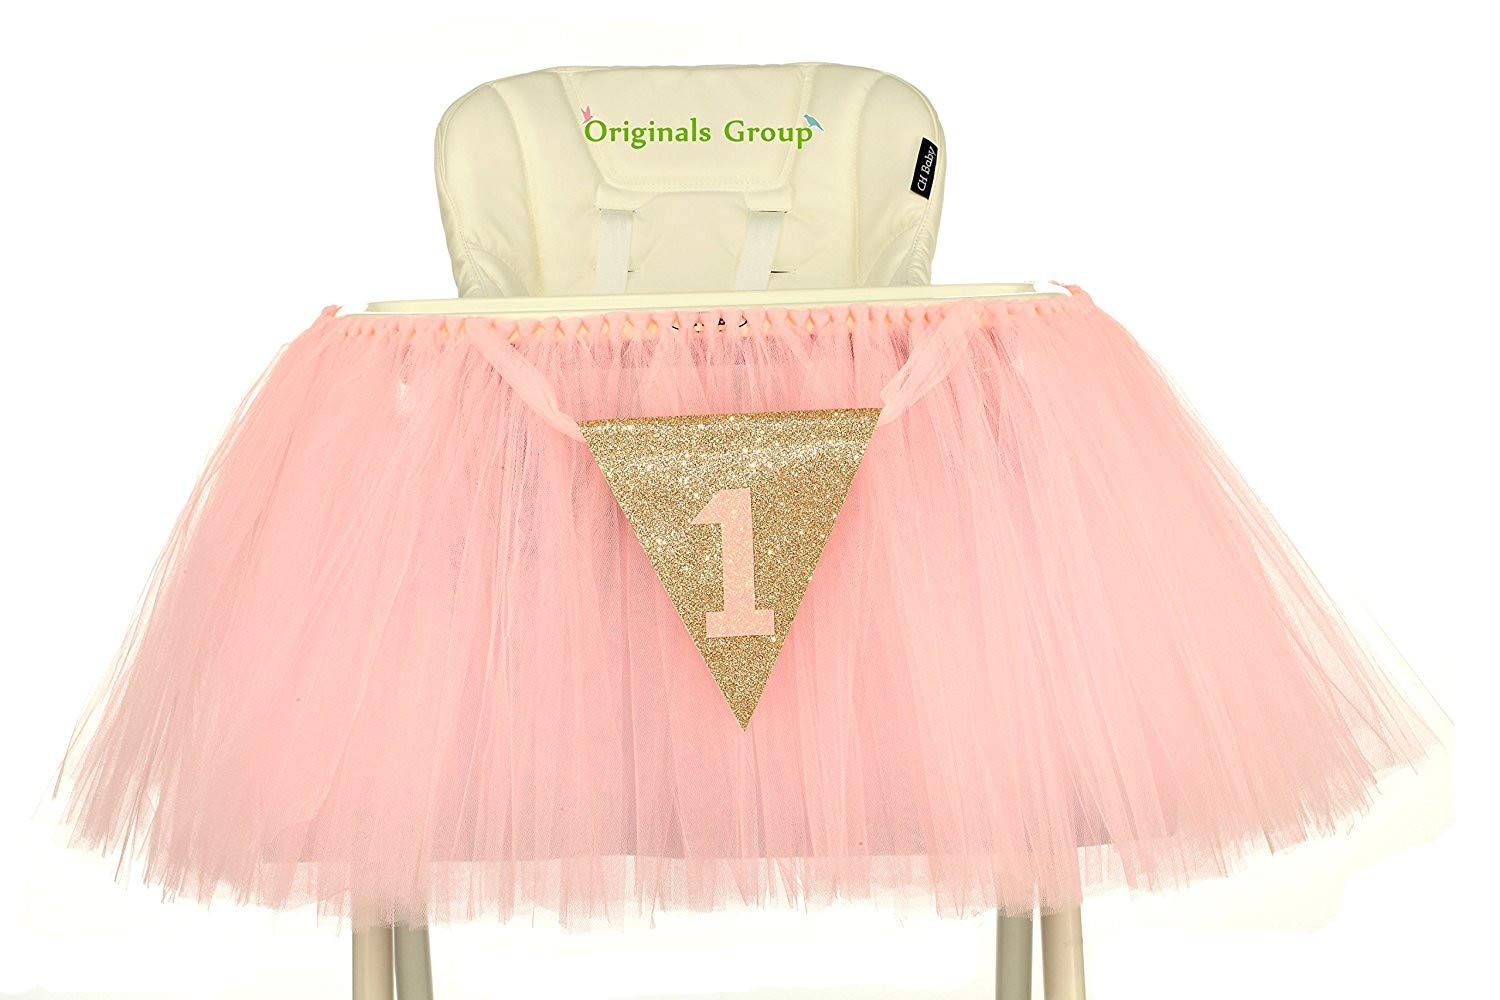 Originals Group 1st Birthday Baby Pink Tutu Skirt for High Chair Decoration for Party Supplies by Originals Group